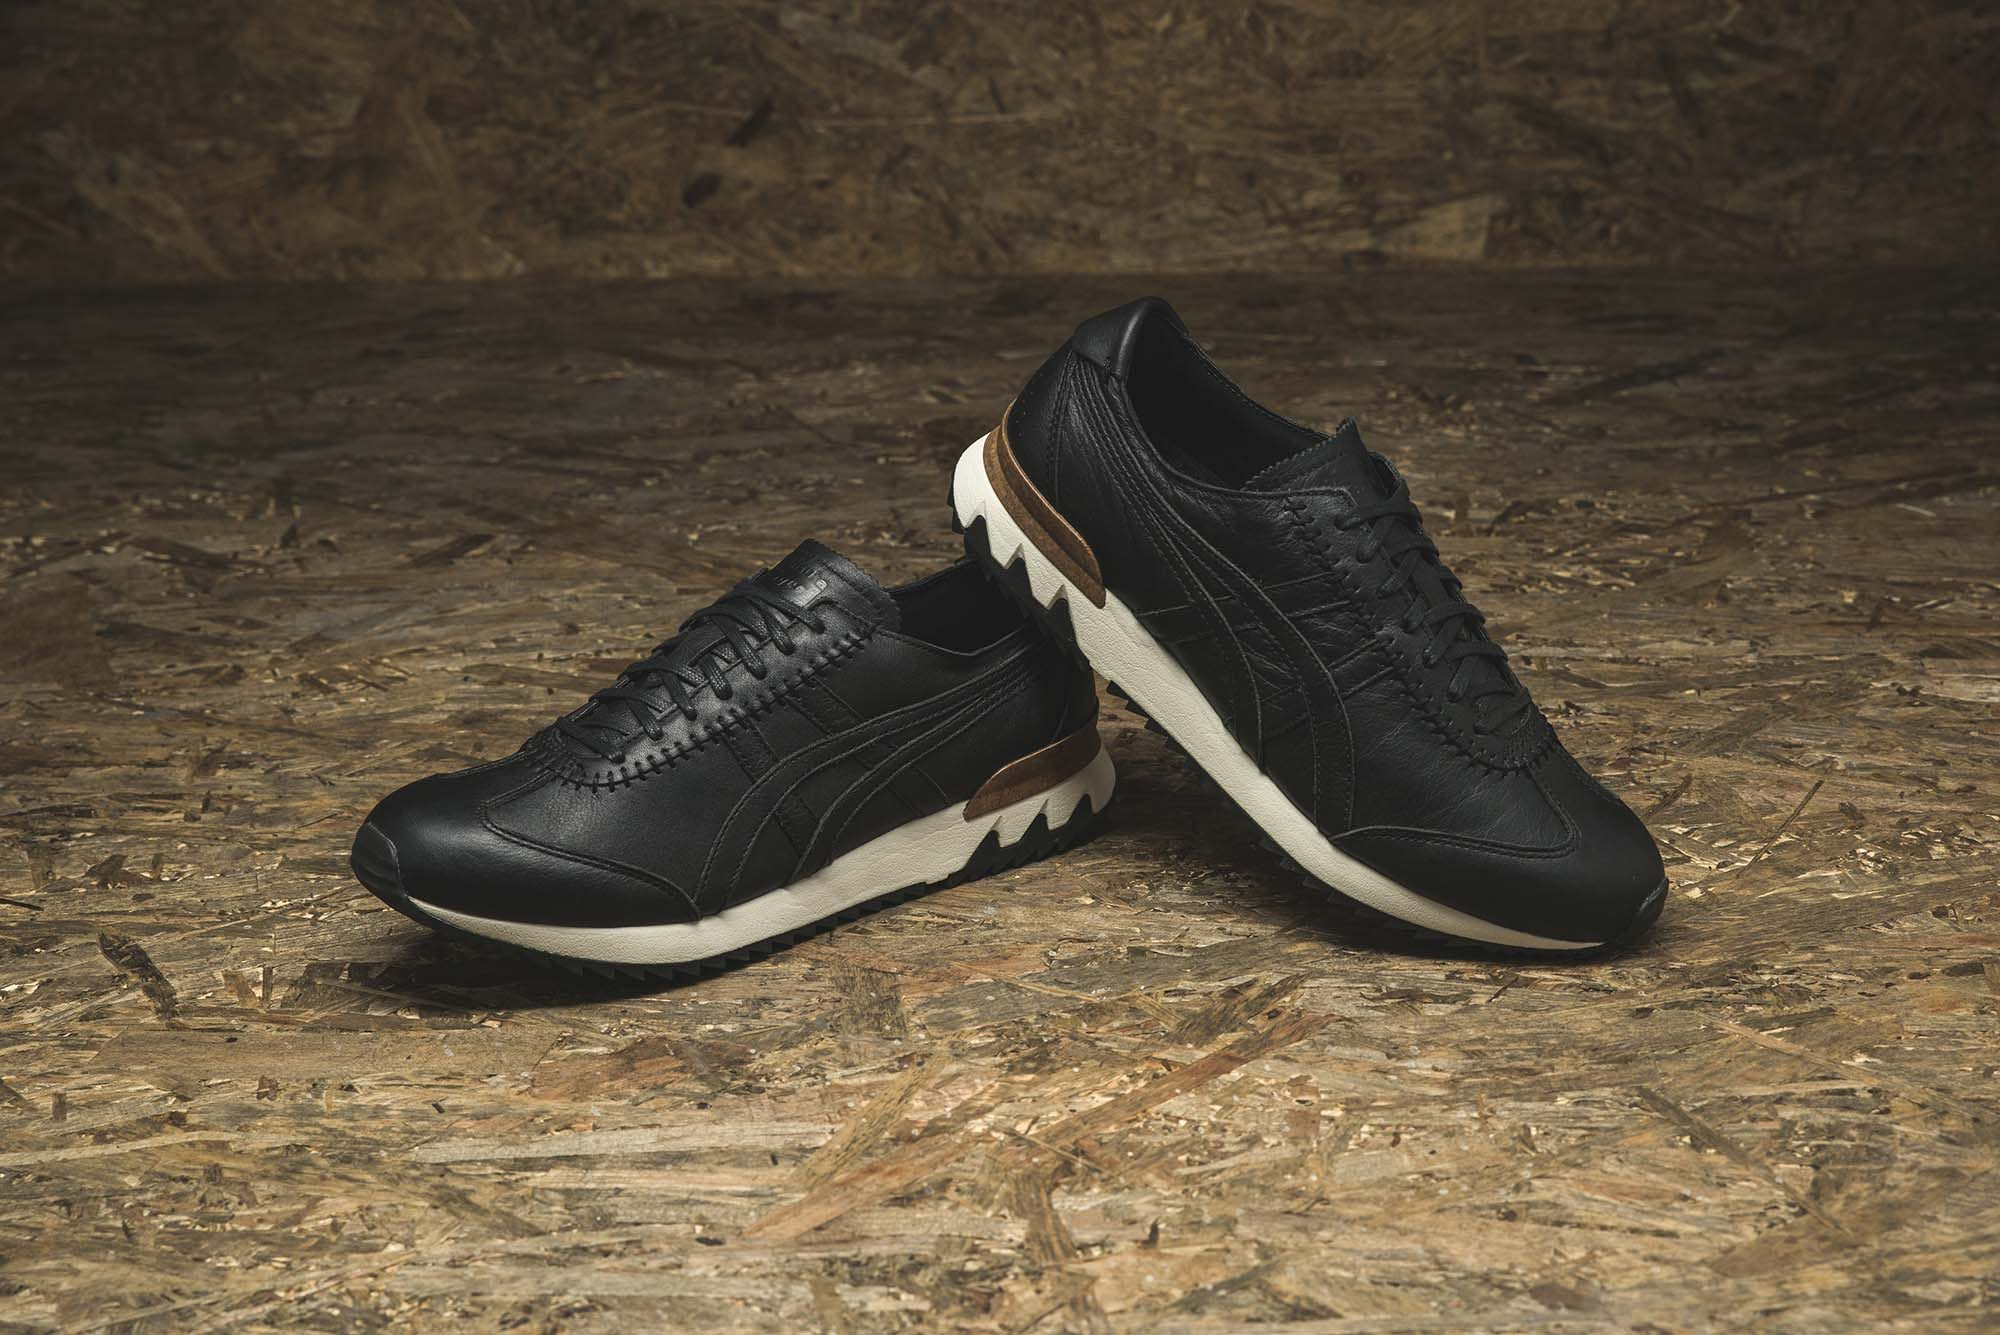 onitsuka-tiger-release-new-tiger-mhs-and-saga-series-24